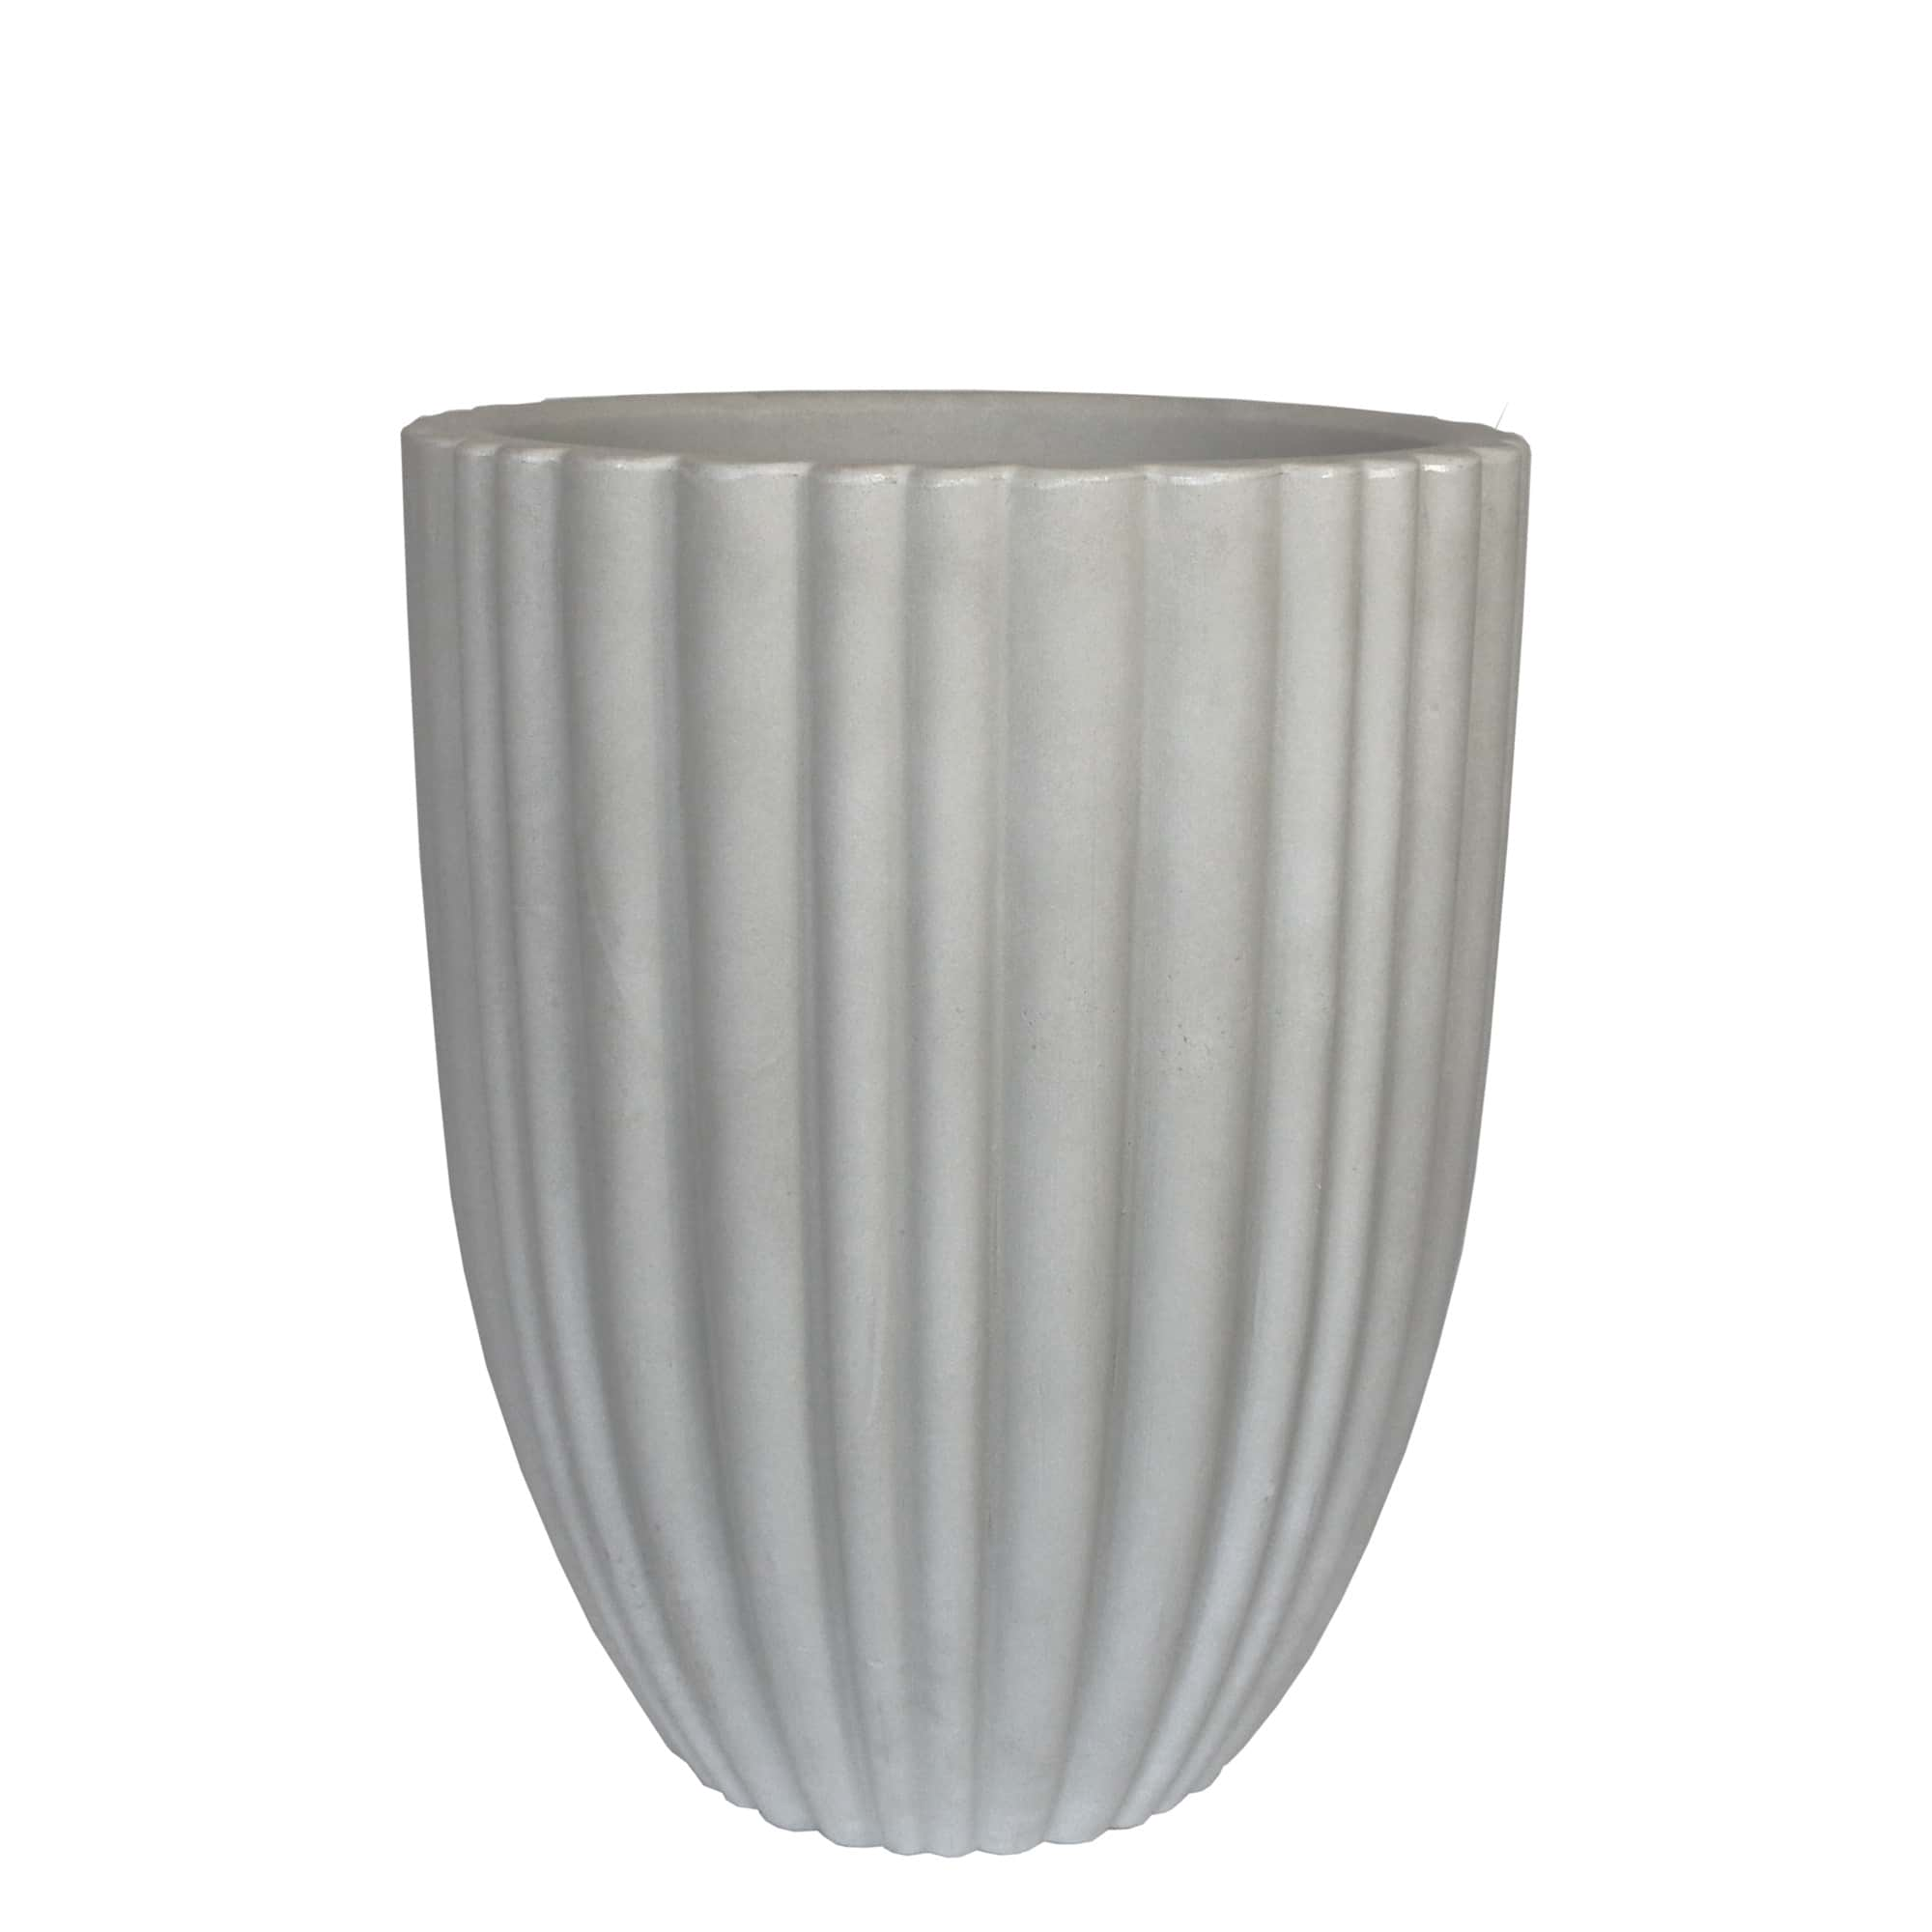 Vaso Cacau 32 x 46 cm Antique Branco